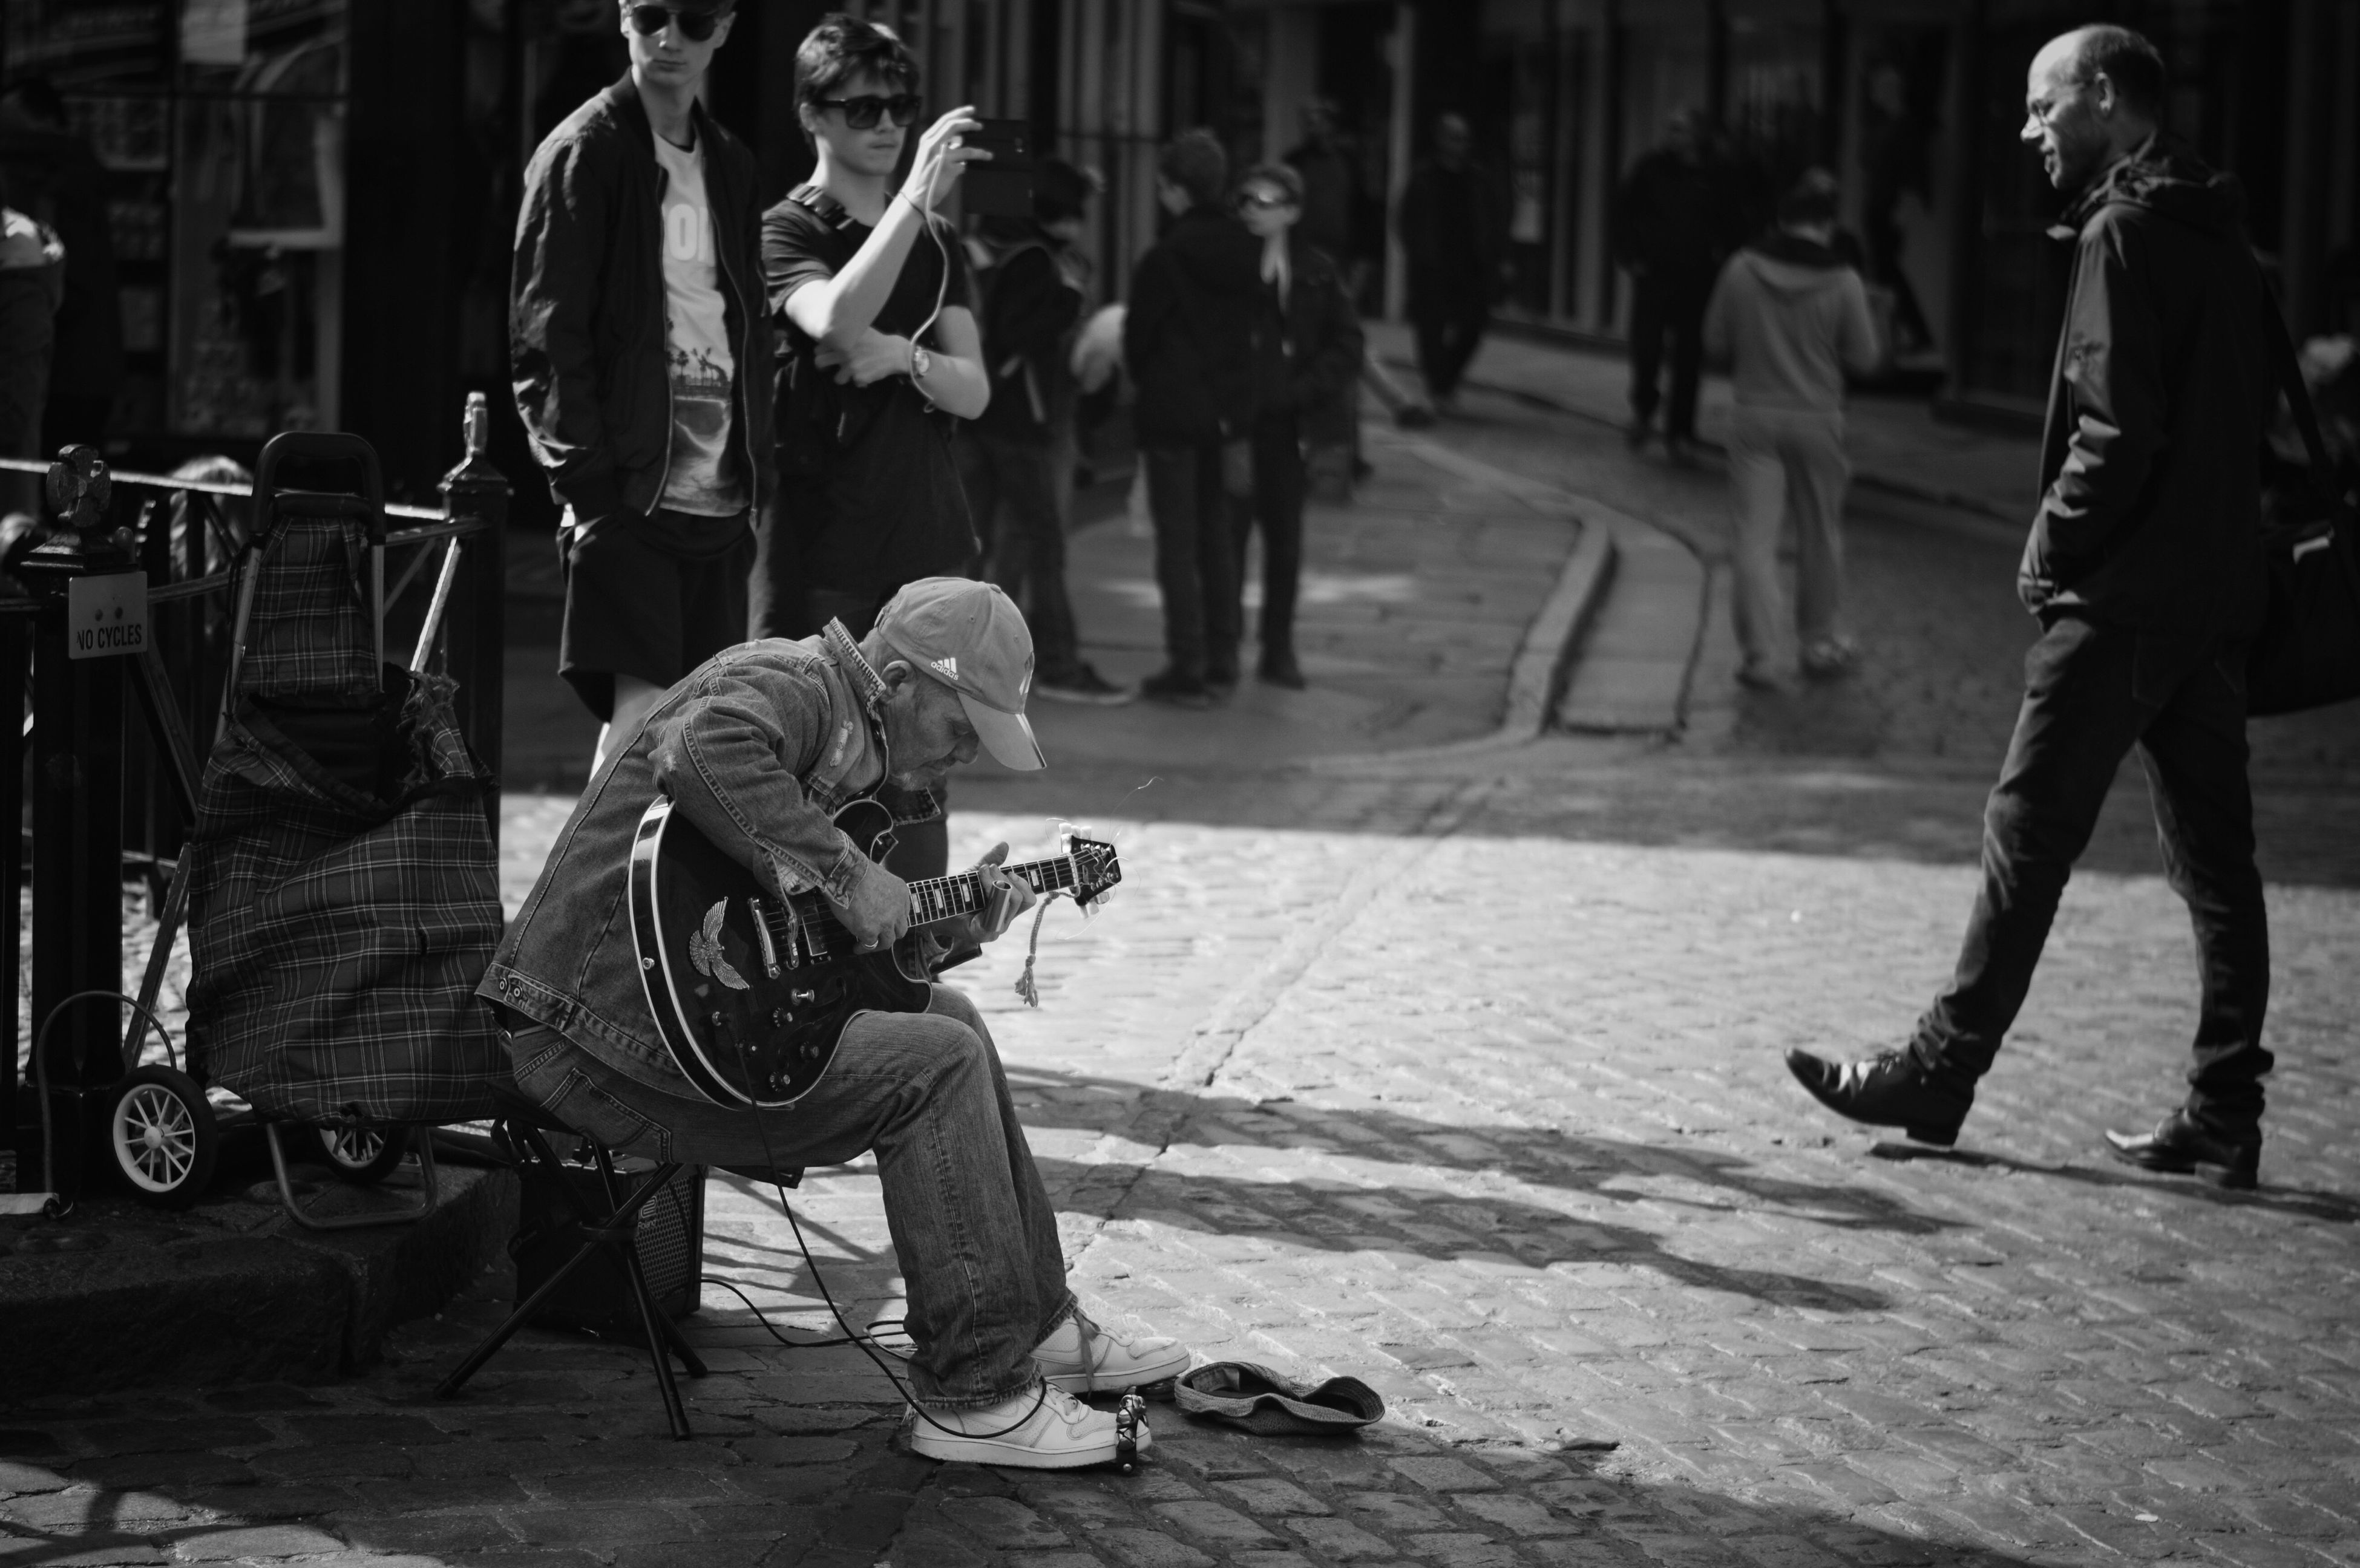 street musician, plucking an instrument, people, musician, adult, men, social issues, crowd, adults only, outdoors, day